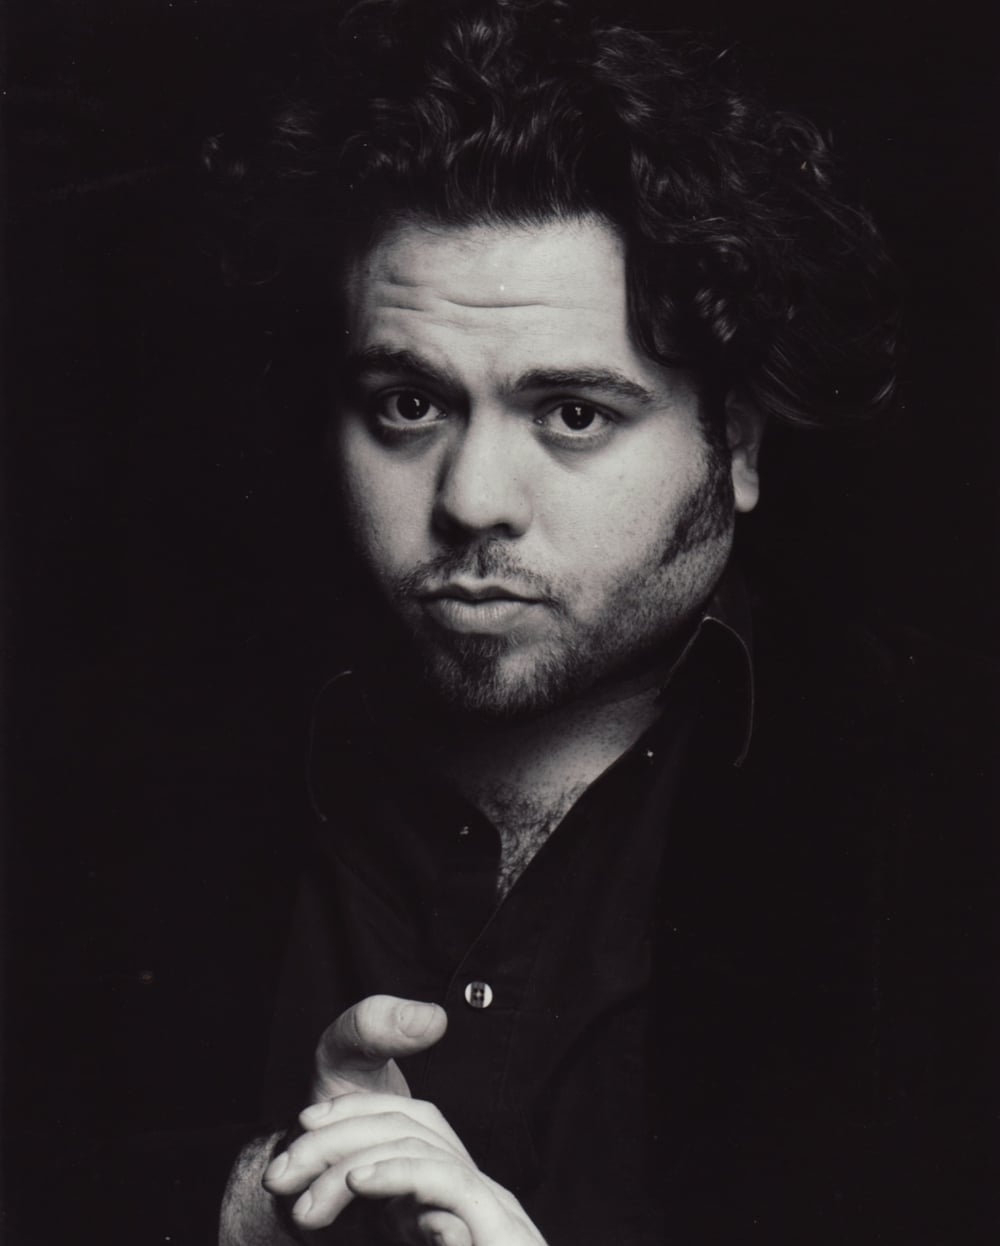 Dan Fogler - Actor and comedian